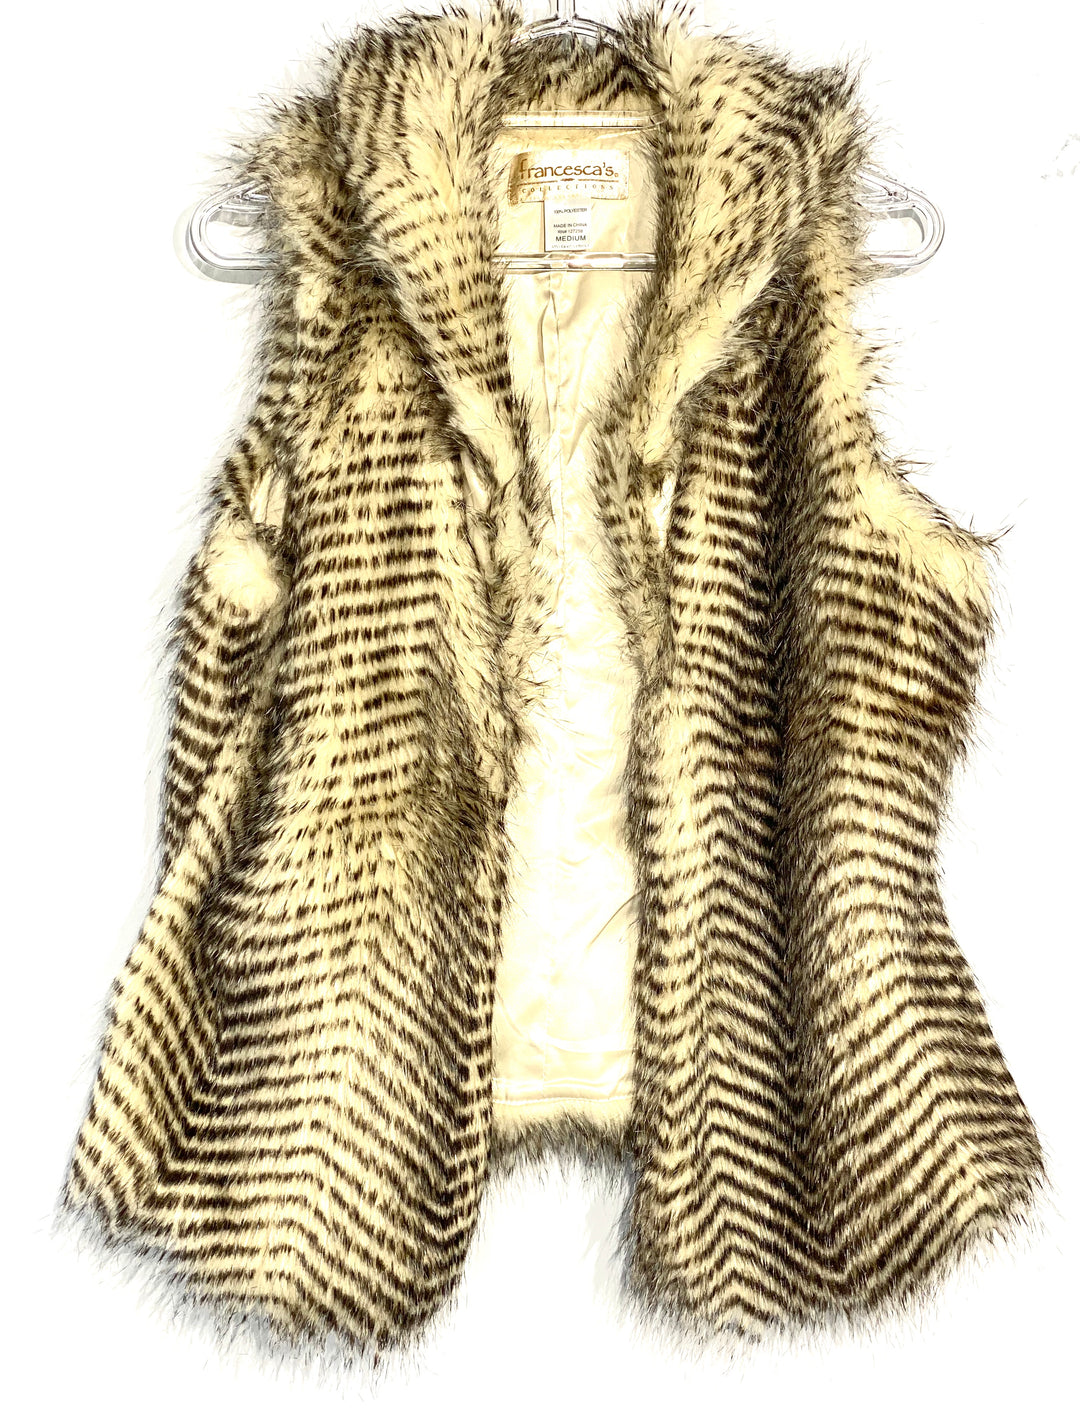 Primary Photo - BRAND: FRANCESCA'S <BR>STYLE: VEST <BR>COLOR: ANIMAL PRINT <BR>SIZE: M <BR>SKU: 262-26211-139534